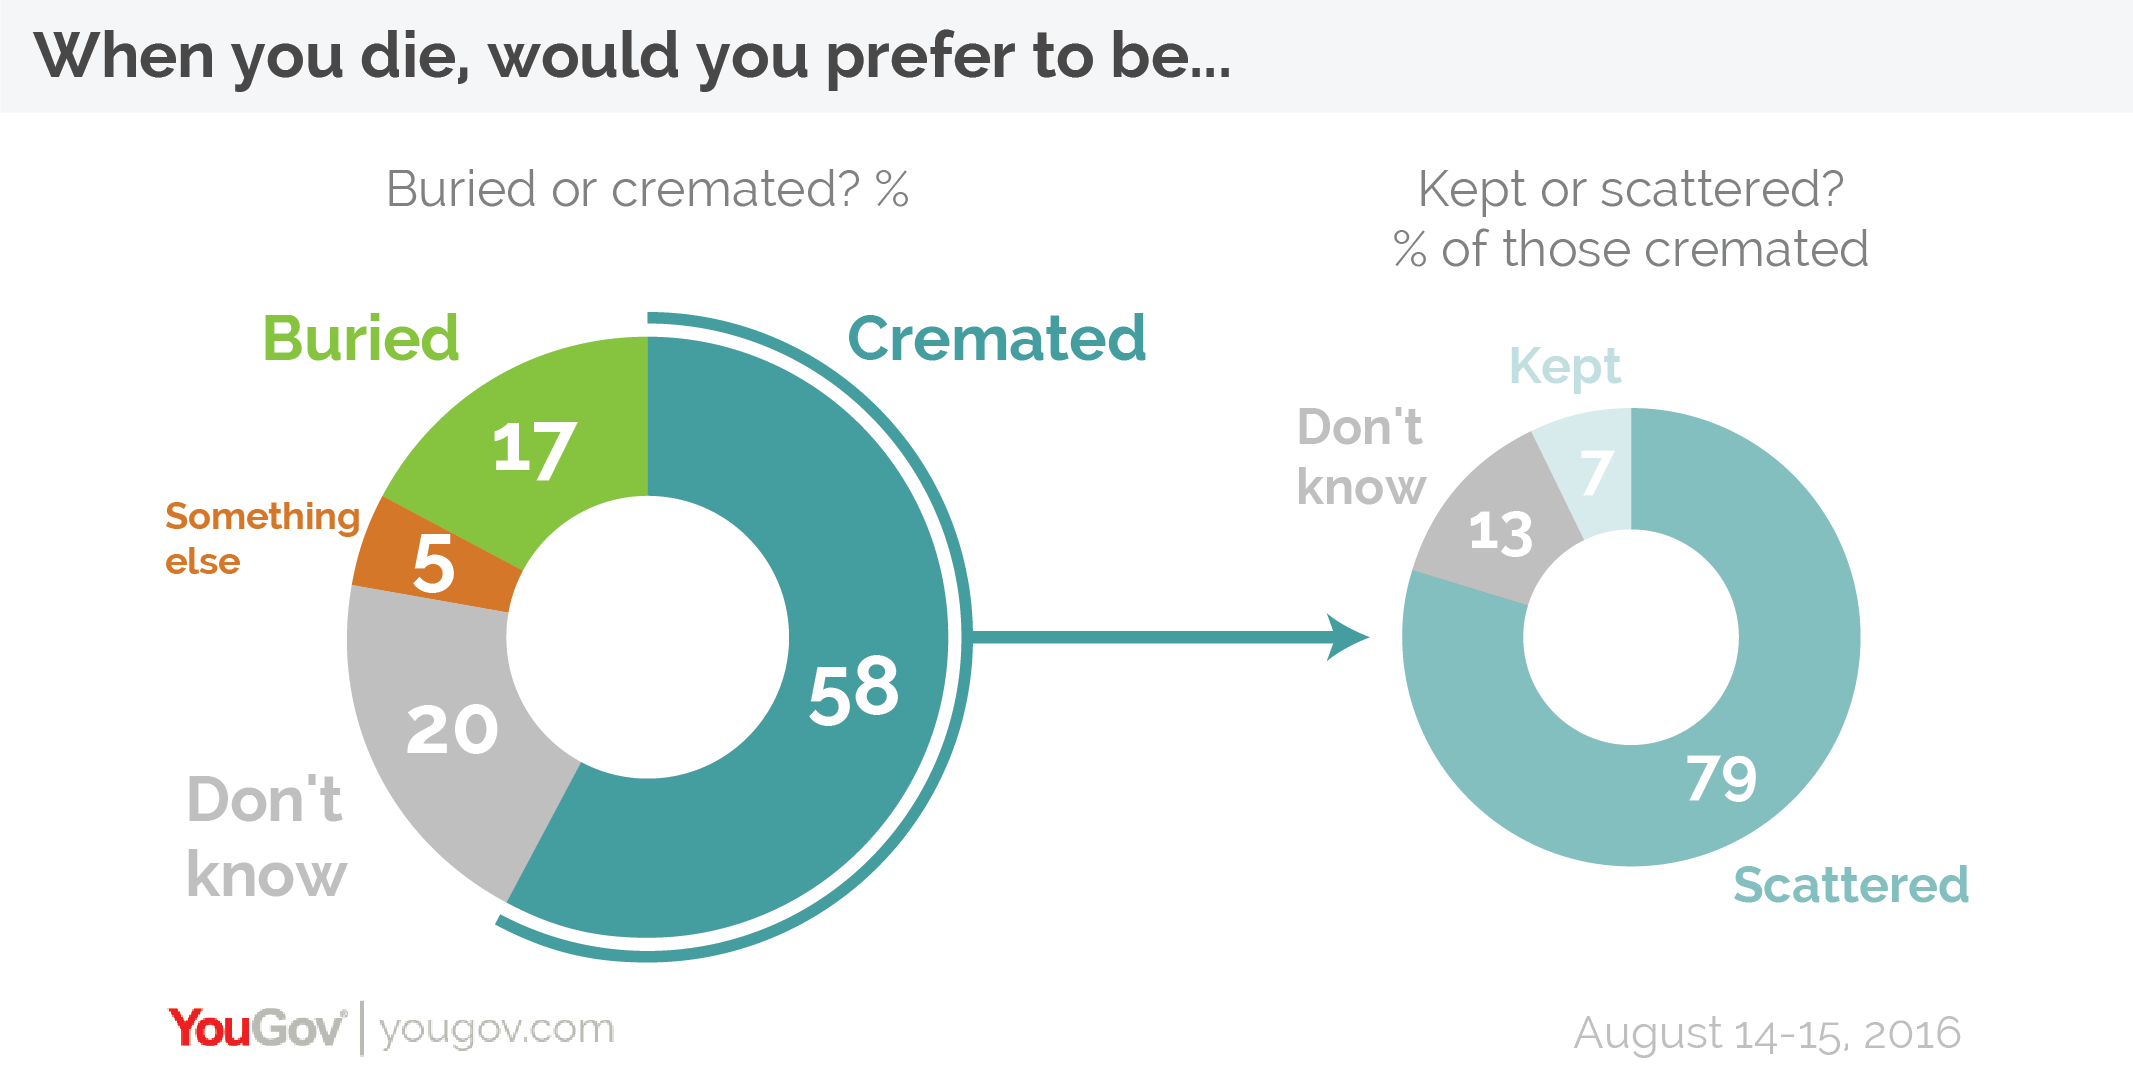 Majority of people want to be cremated when they die | YouGov